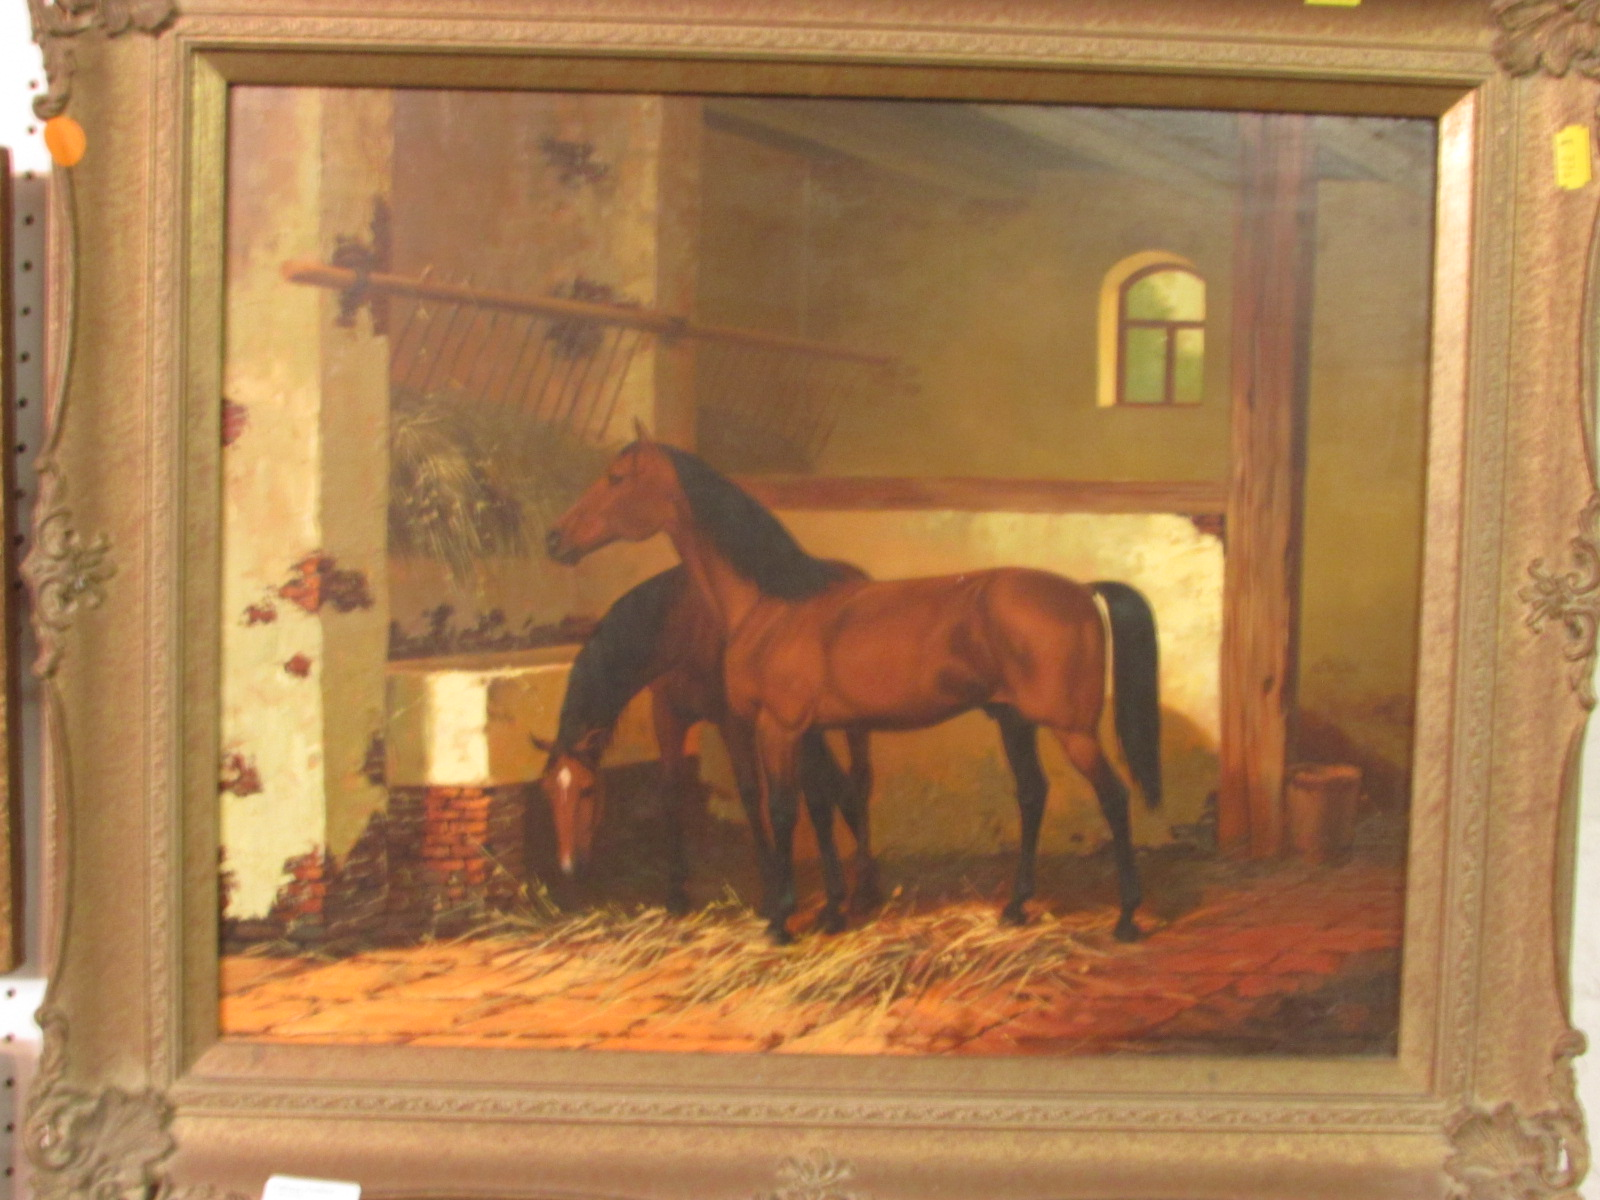 Lot 51 - Two horses in stable, oil on panel, signed and dated Liss 86 lower right (see illustrating